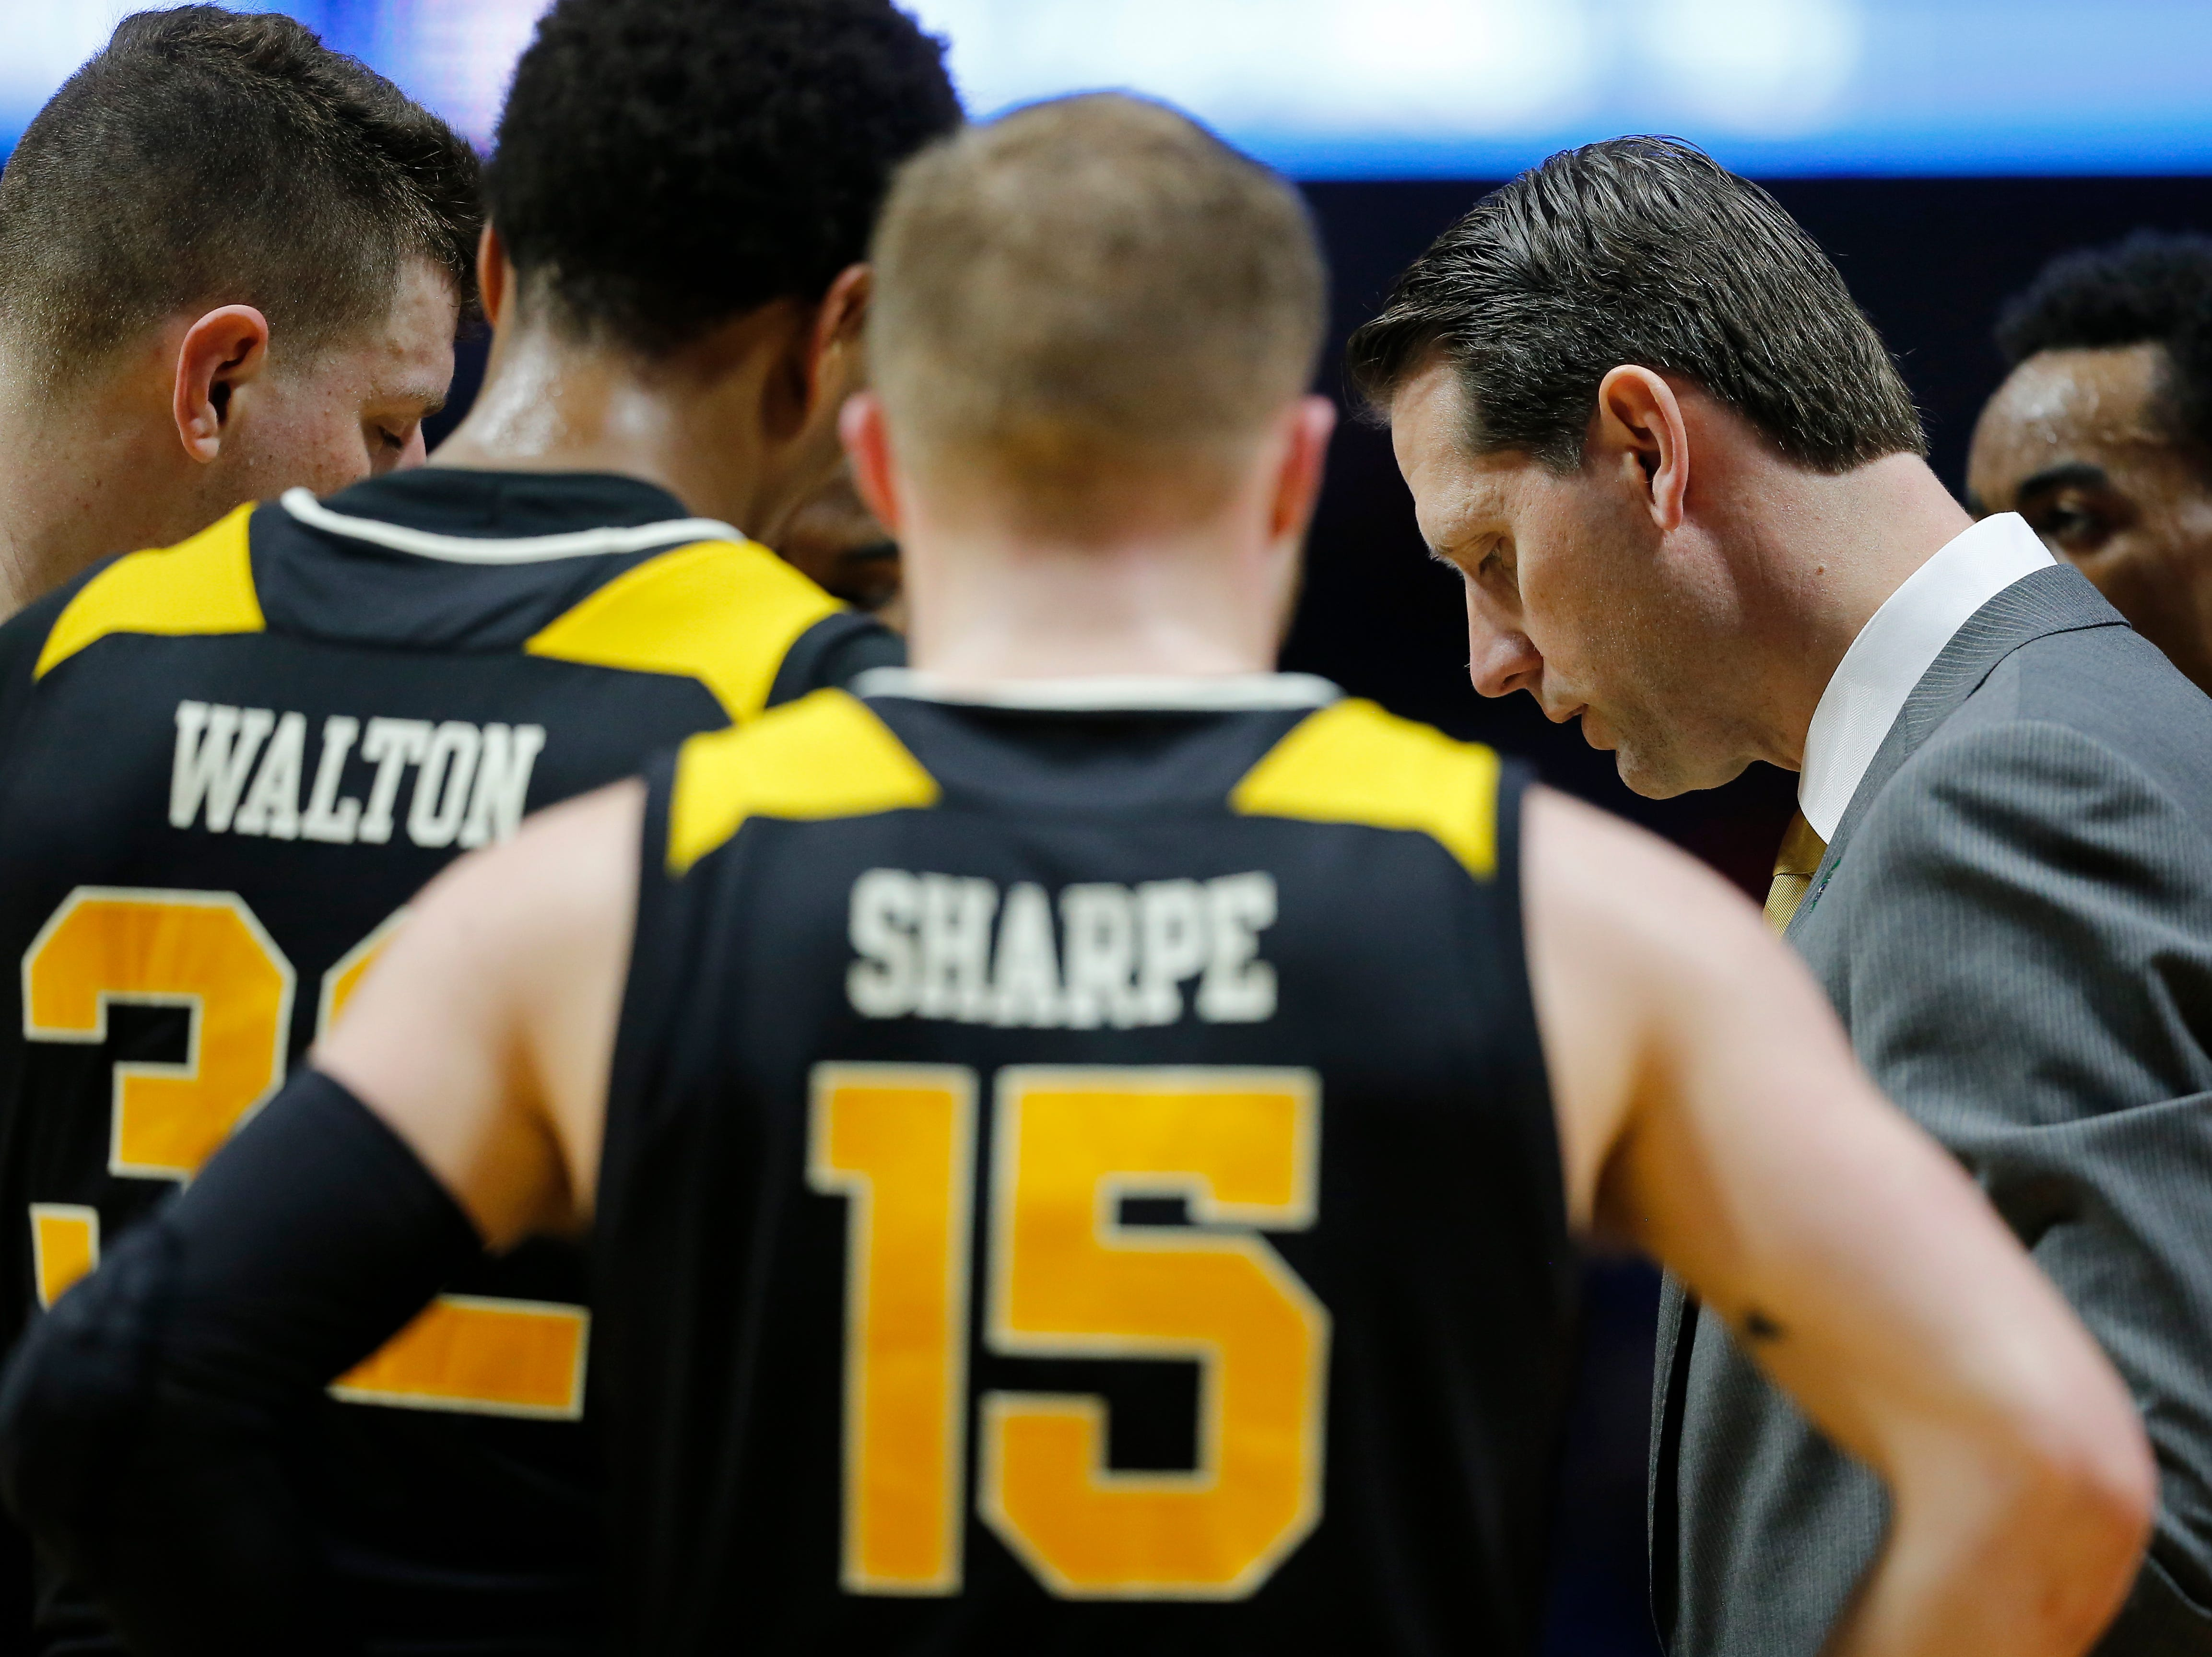 Northern Kentucky Norse head coach John Brannen huddles with his team in the second half of the NCAA Tournament First Round game between the 14-seeded Northern Kentucky Norse and the 3-seeded Texas Tech Red Raiders the BOK Center in downtown Tulsa on Friday, March 22, 2019. NKU was knocked from the tournament with a 72-57 loss to the Red Raiders.